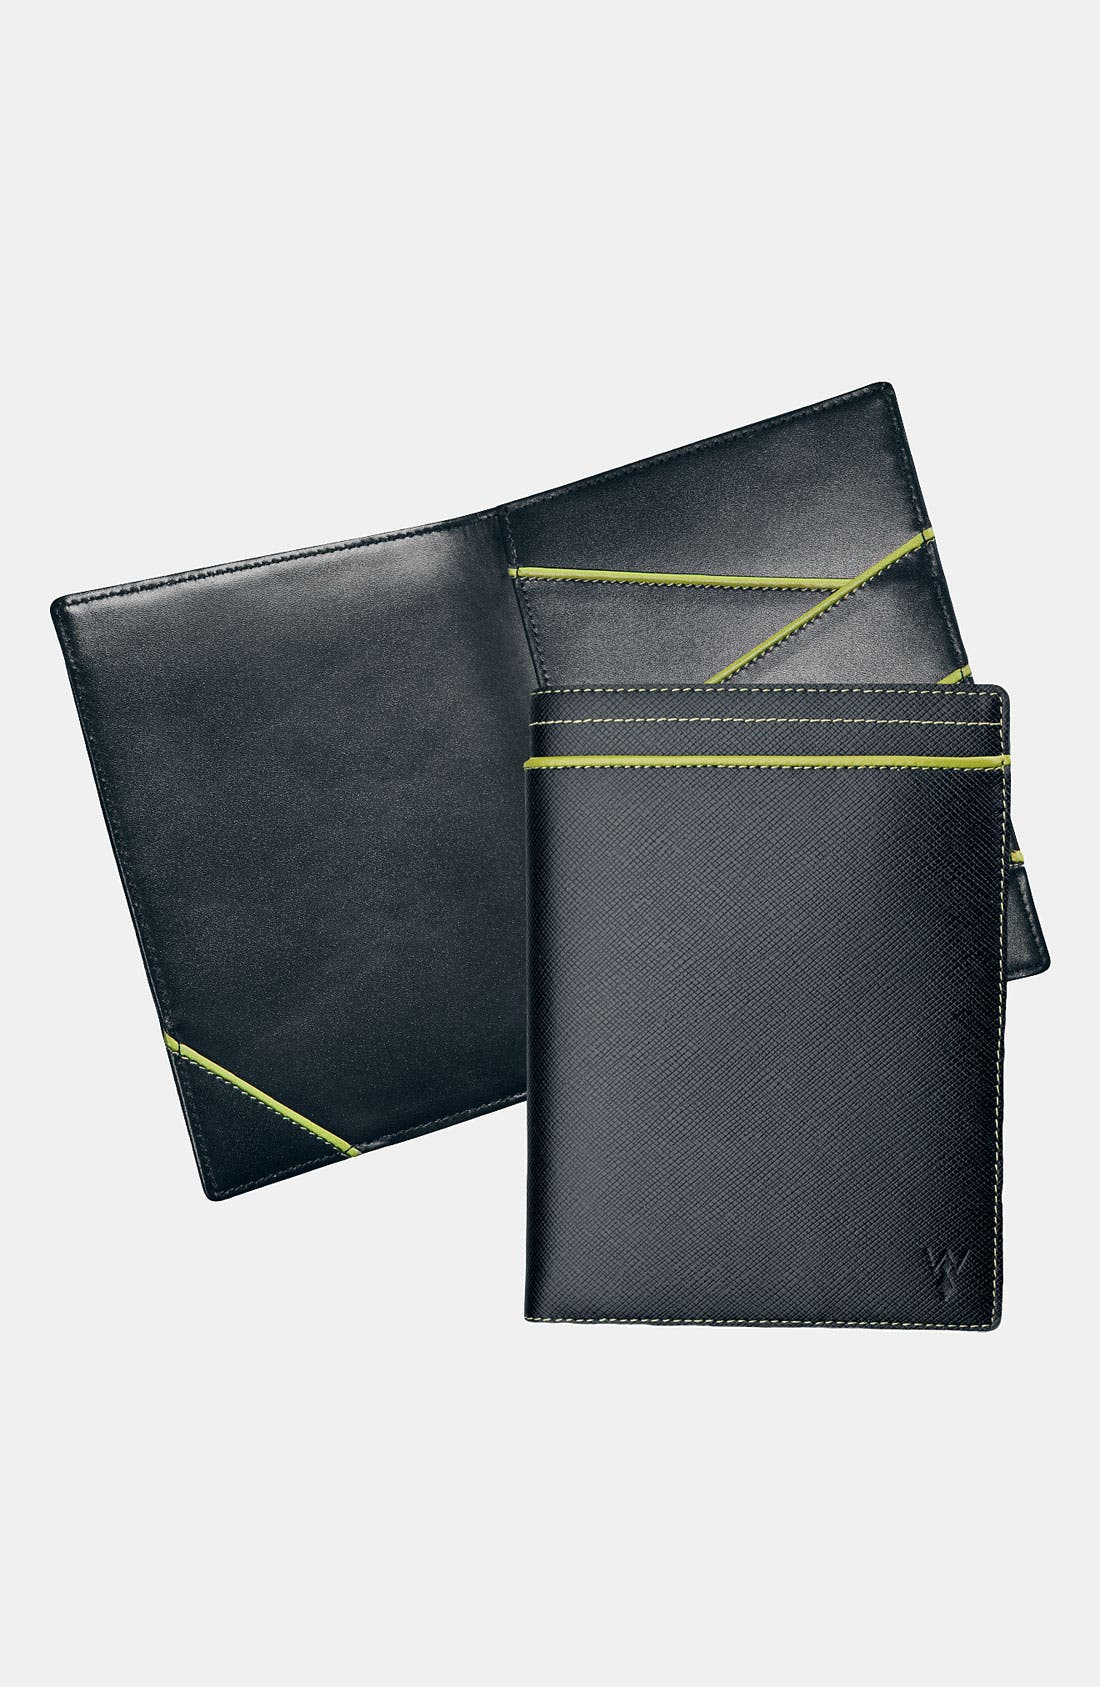 Main Image - Würkin Stiffs RFID Blocker Passport Wallet